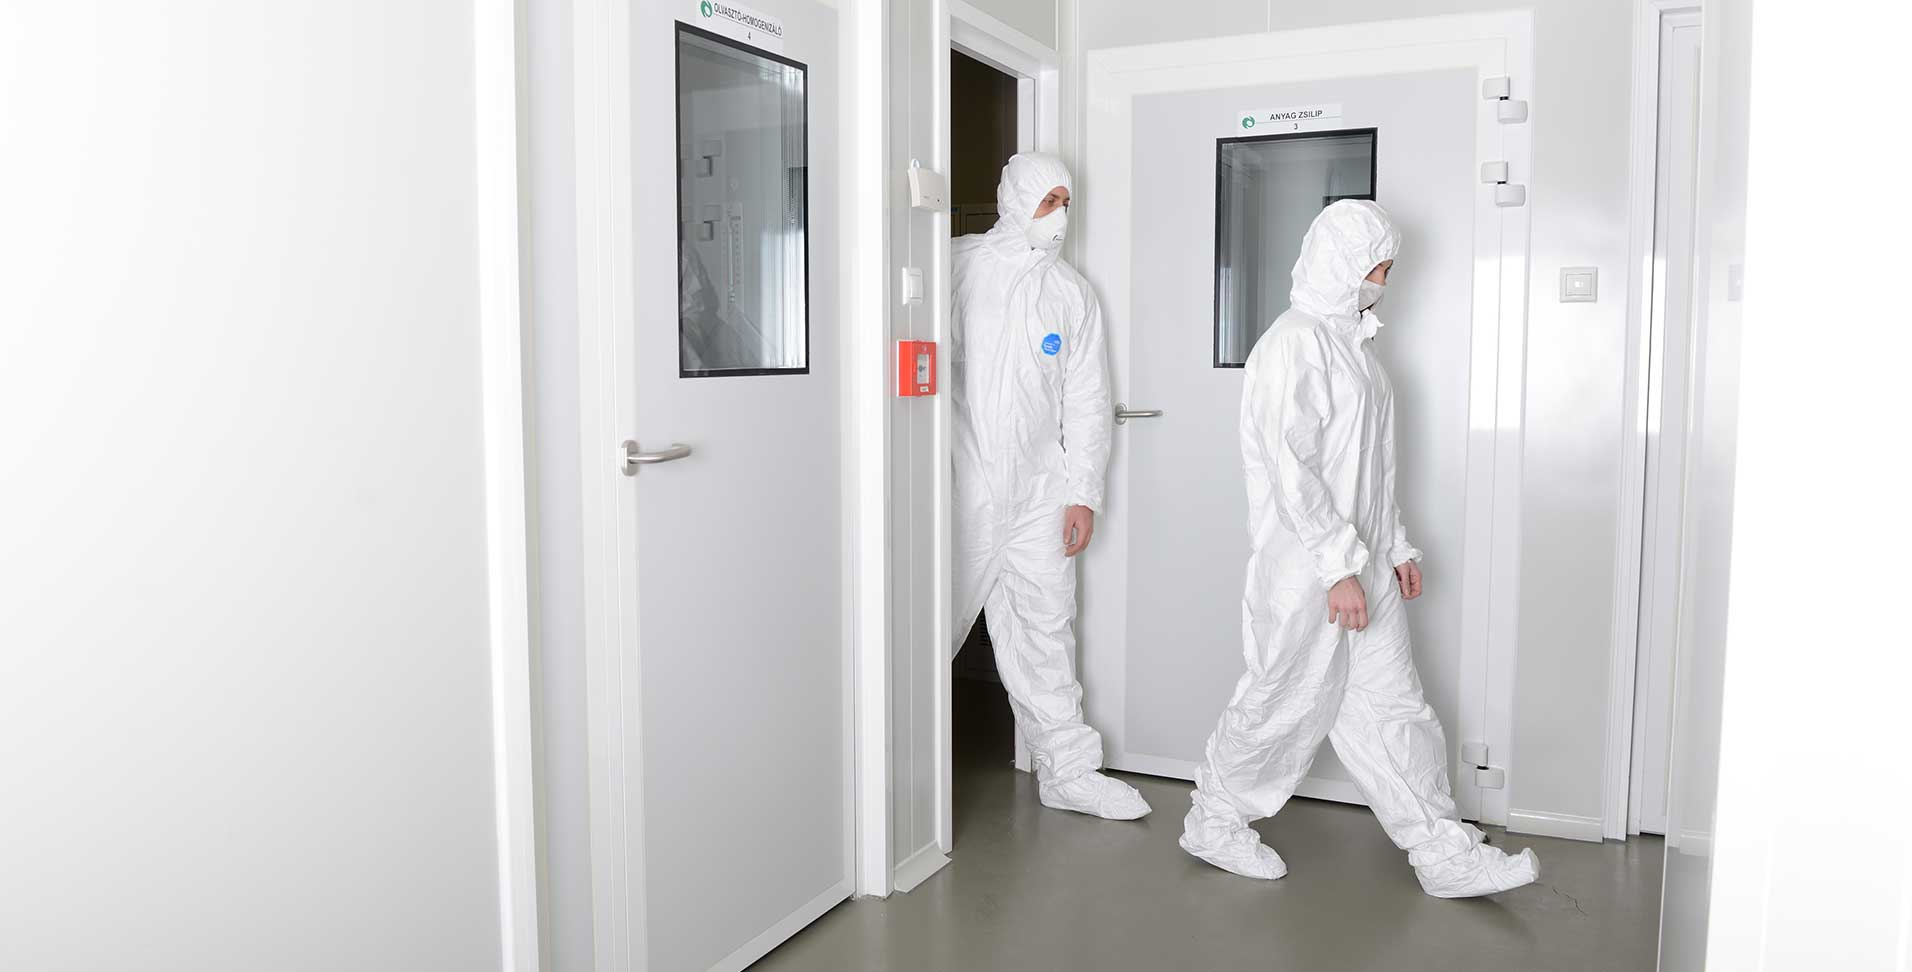 The Ultimate Guide To Proper Gowning In a Clean Room